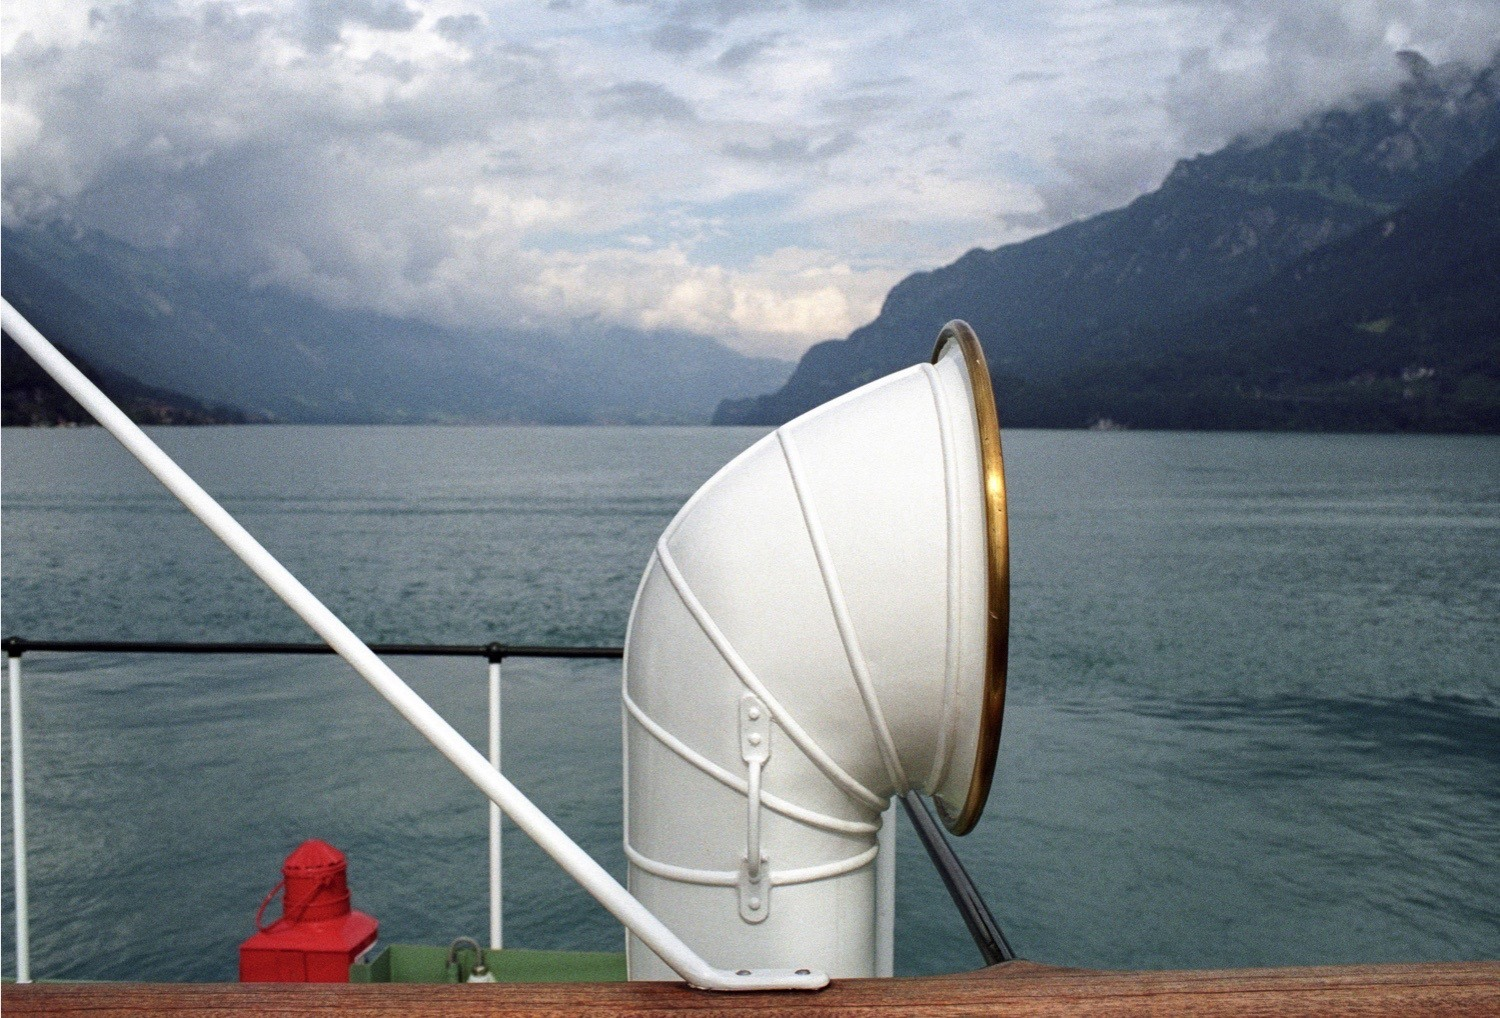 Teju Cole, Brienzersee, June 2014, 2014/2018, archival pigment print, printed 2017, 19 1/8 x 32 ½ inches, edition 4 of 5, Collection Lannan Foundation. I opened my eyes. What lay before me looked like the sound of the alphorn at the beginning of the final movement of Brahms's First Symphony. This was the sound, this was the sound I saw.